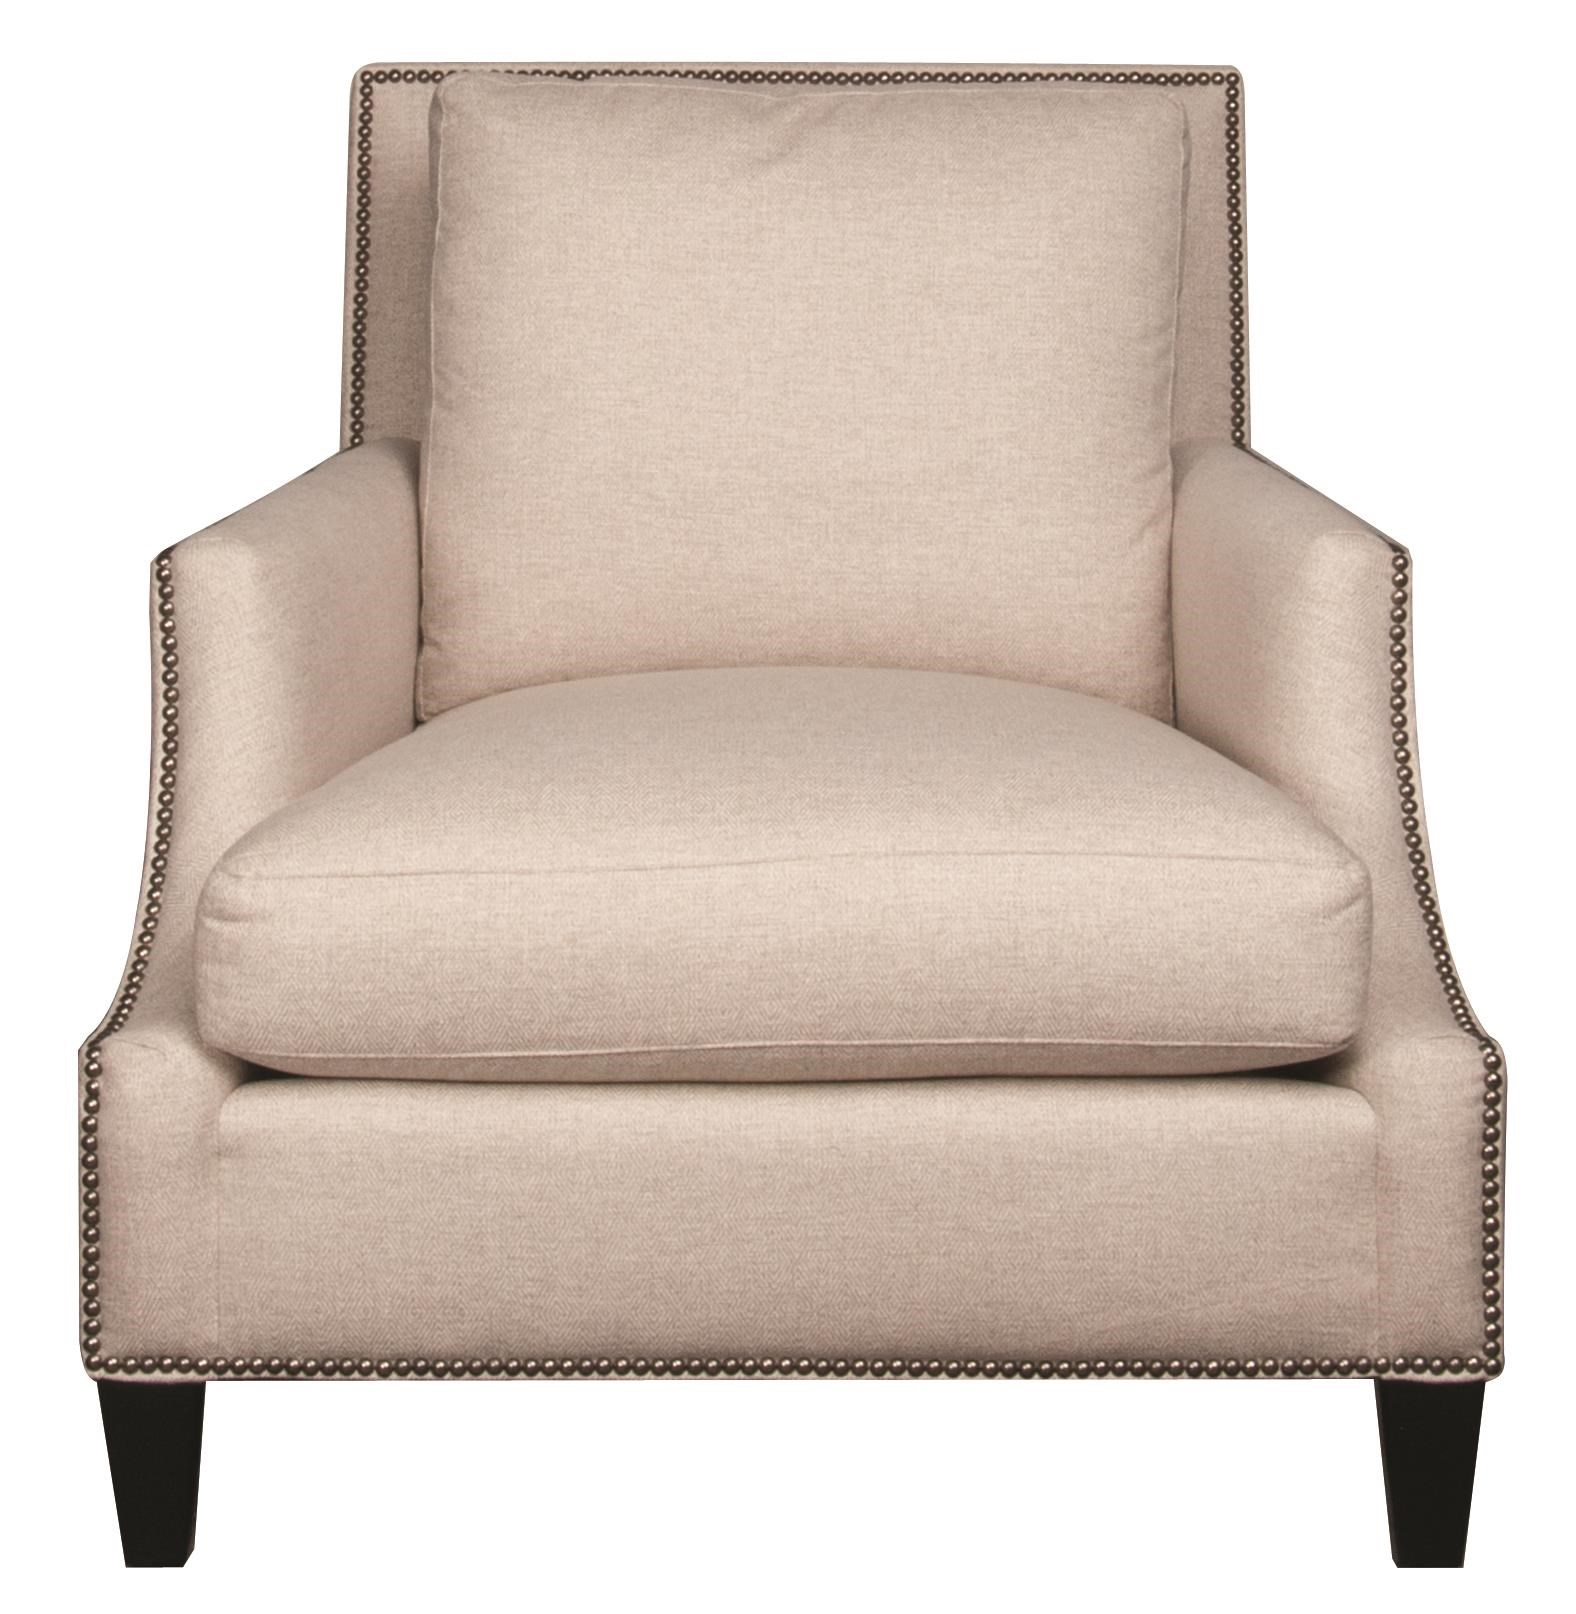 Bernhardt CrawfordCrawford Chair ...